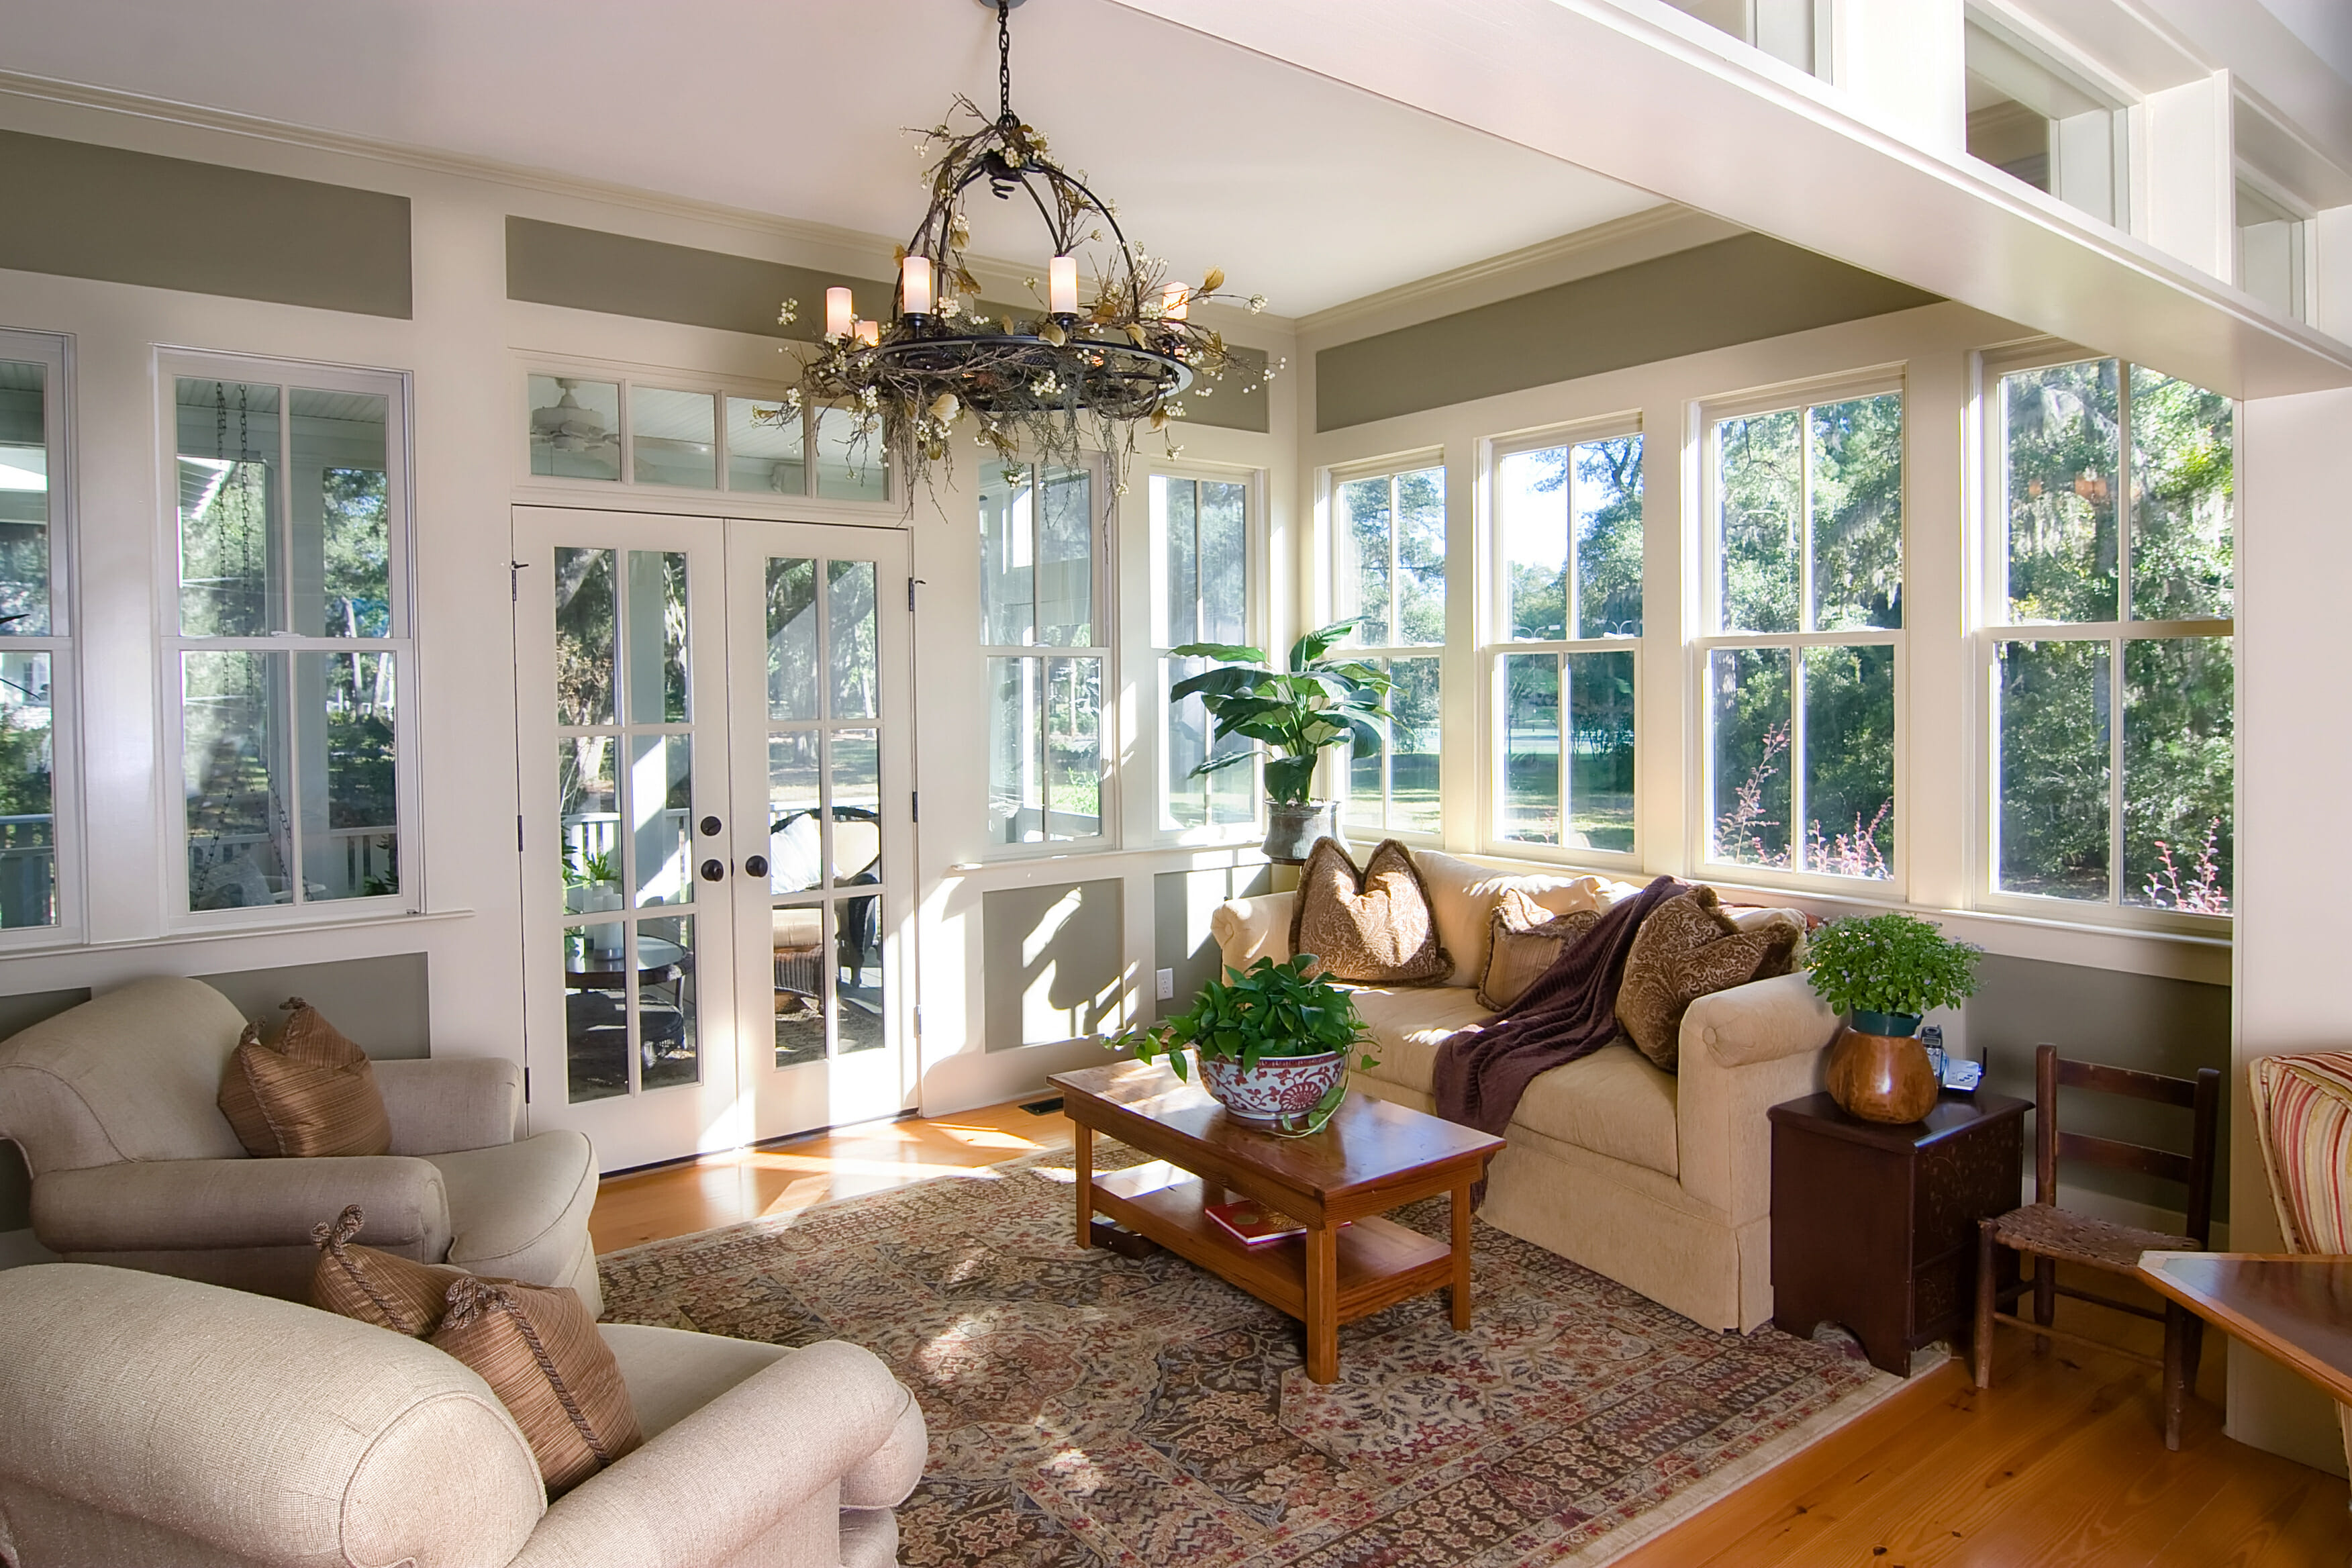 Sunroom decorating ideas modernize - Amazing image of sunroom interior design and decoration ...